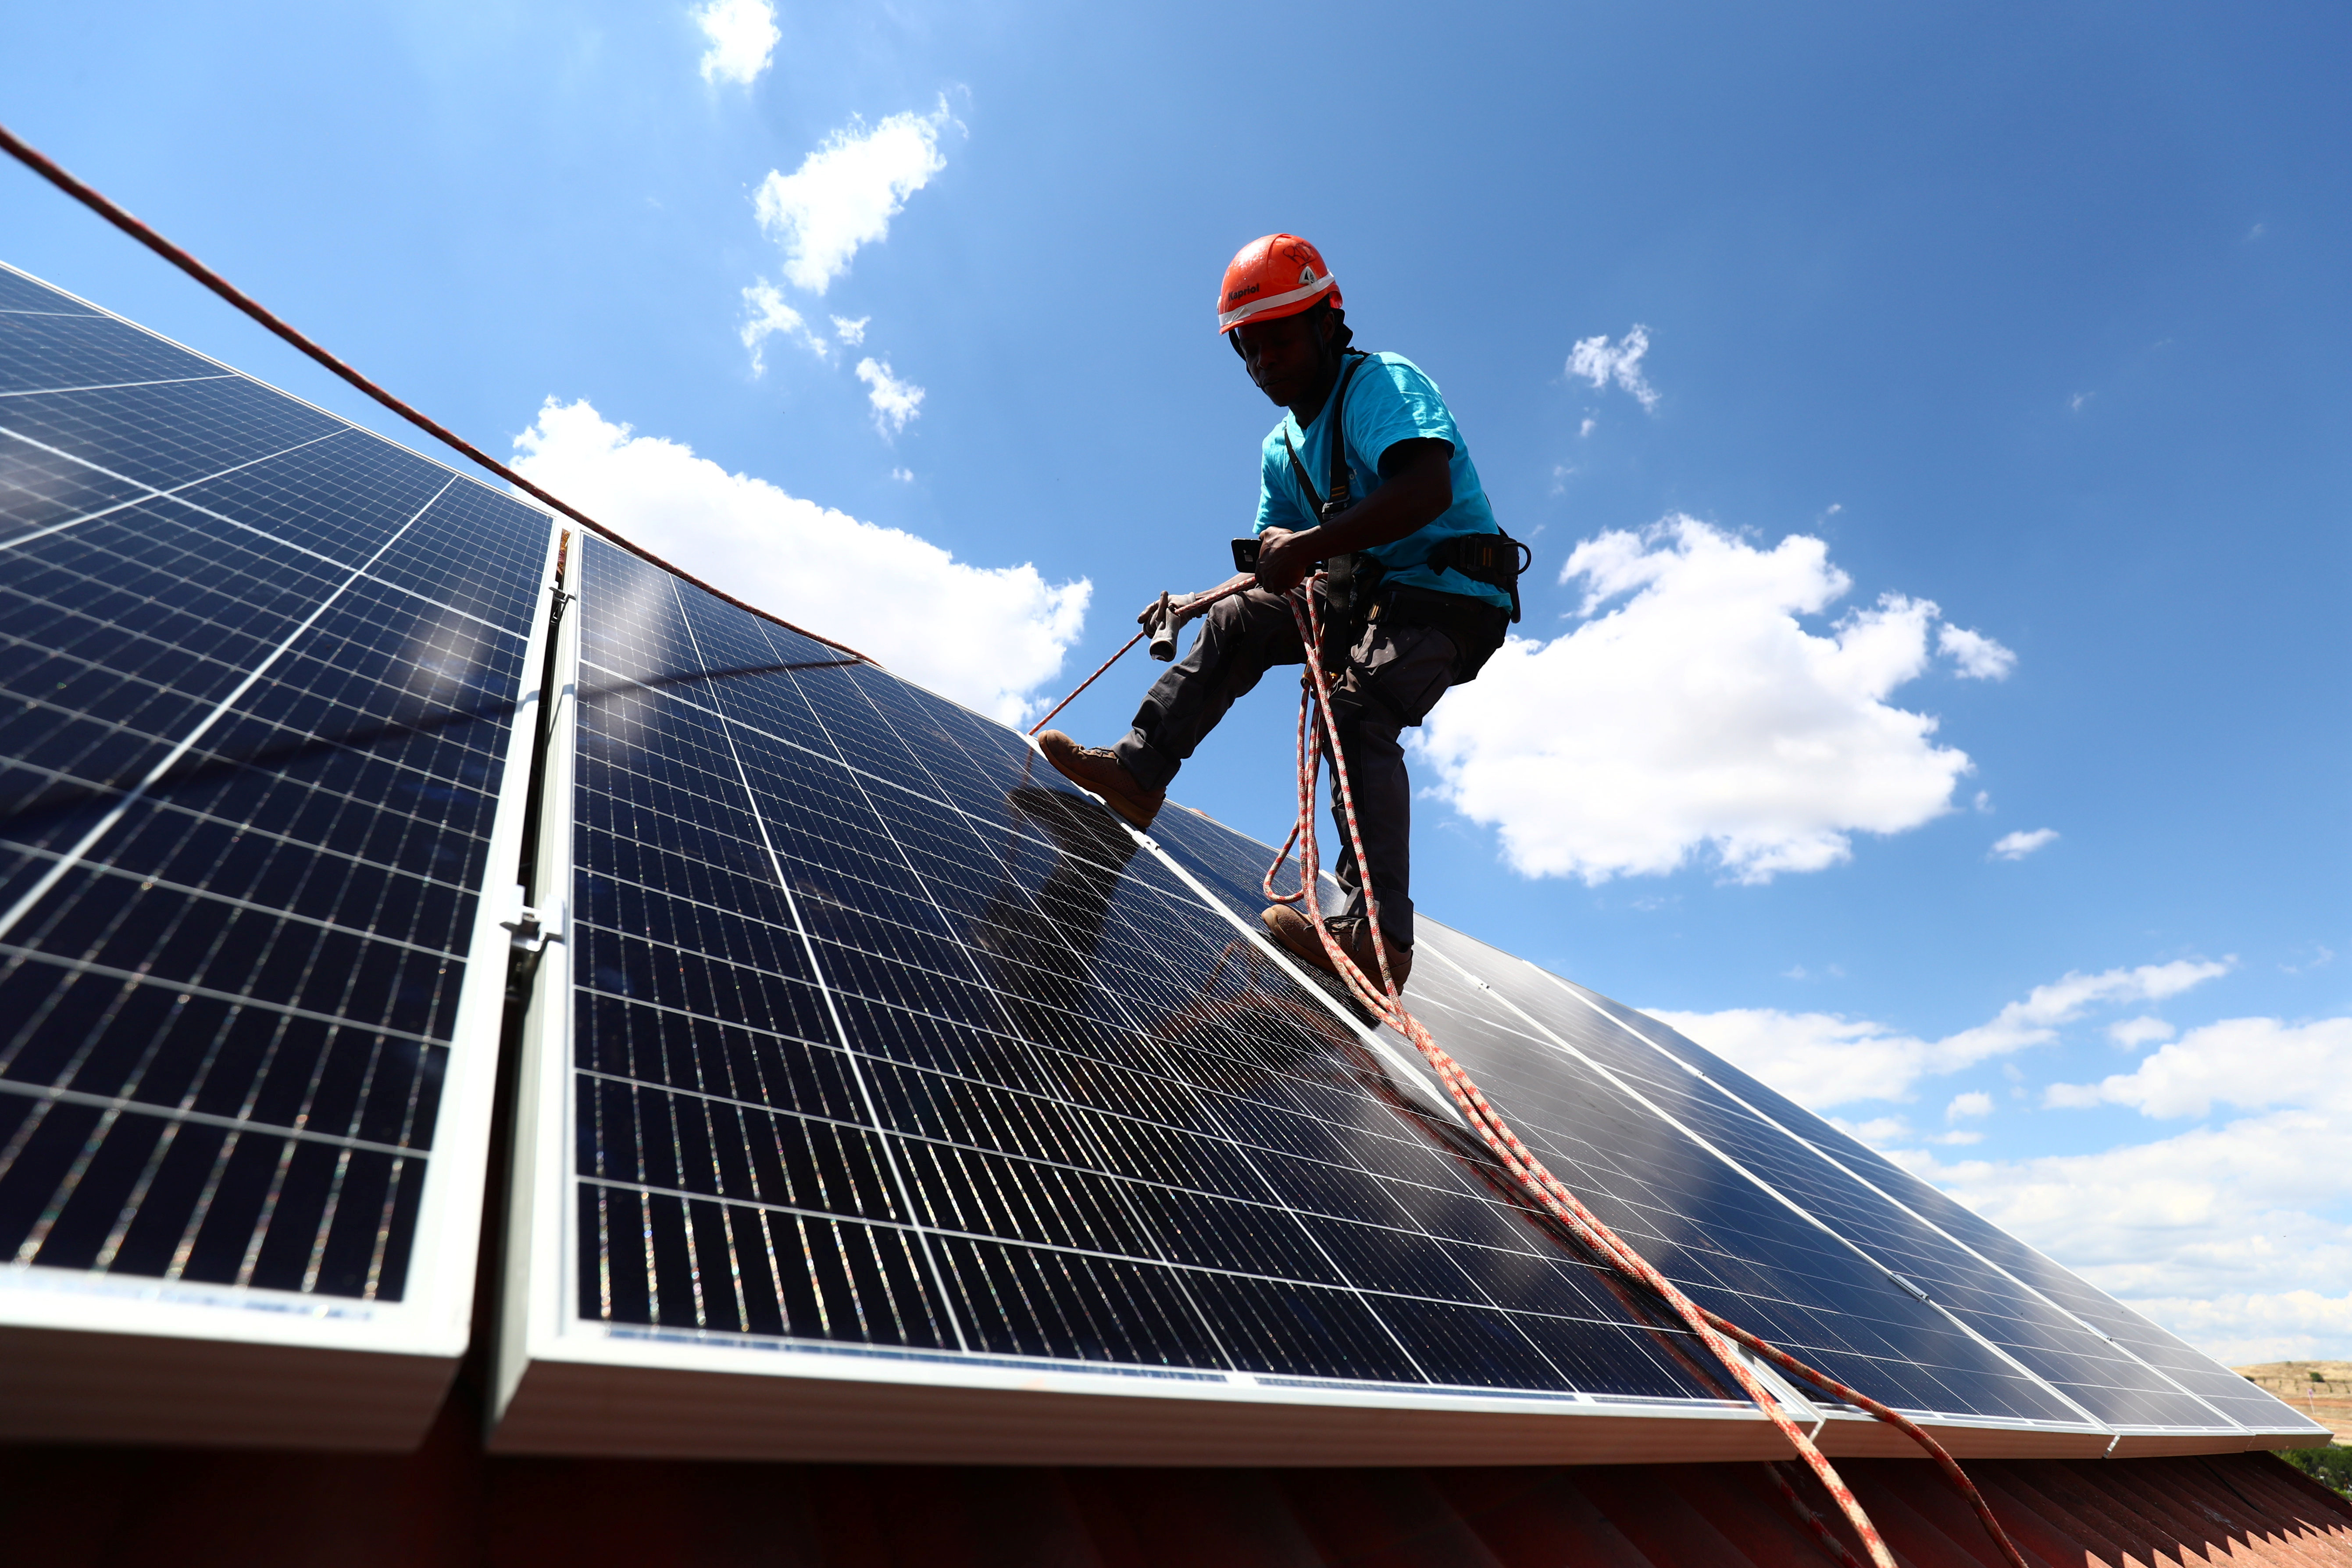 Rodrigue Kauahou, a worker of the installation company Alromar, sets up solar panels on the roof of a home in Colmenar Viejo, Spain June 19, 2020. Picture taken June 19, 2020. REUTERS/Sergio Perez - RC2HPH9UOQOH